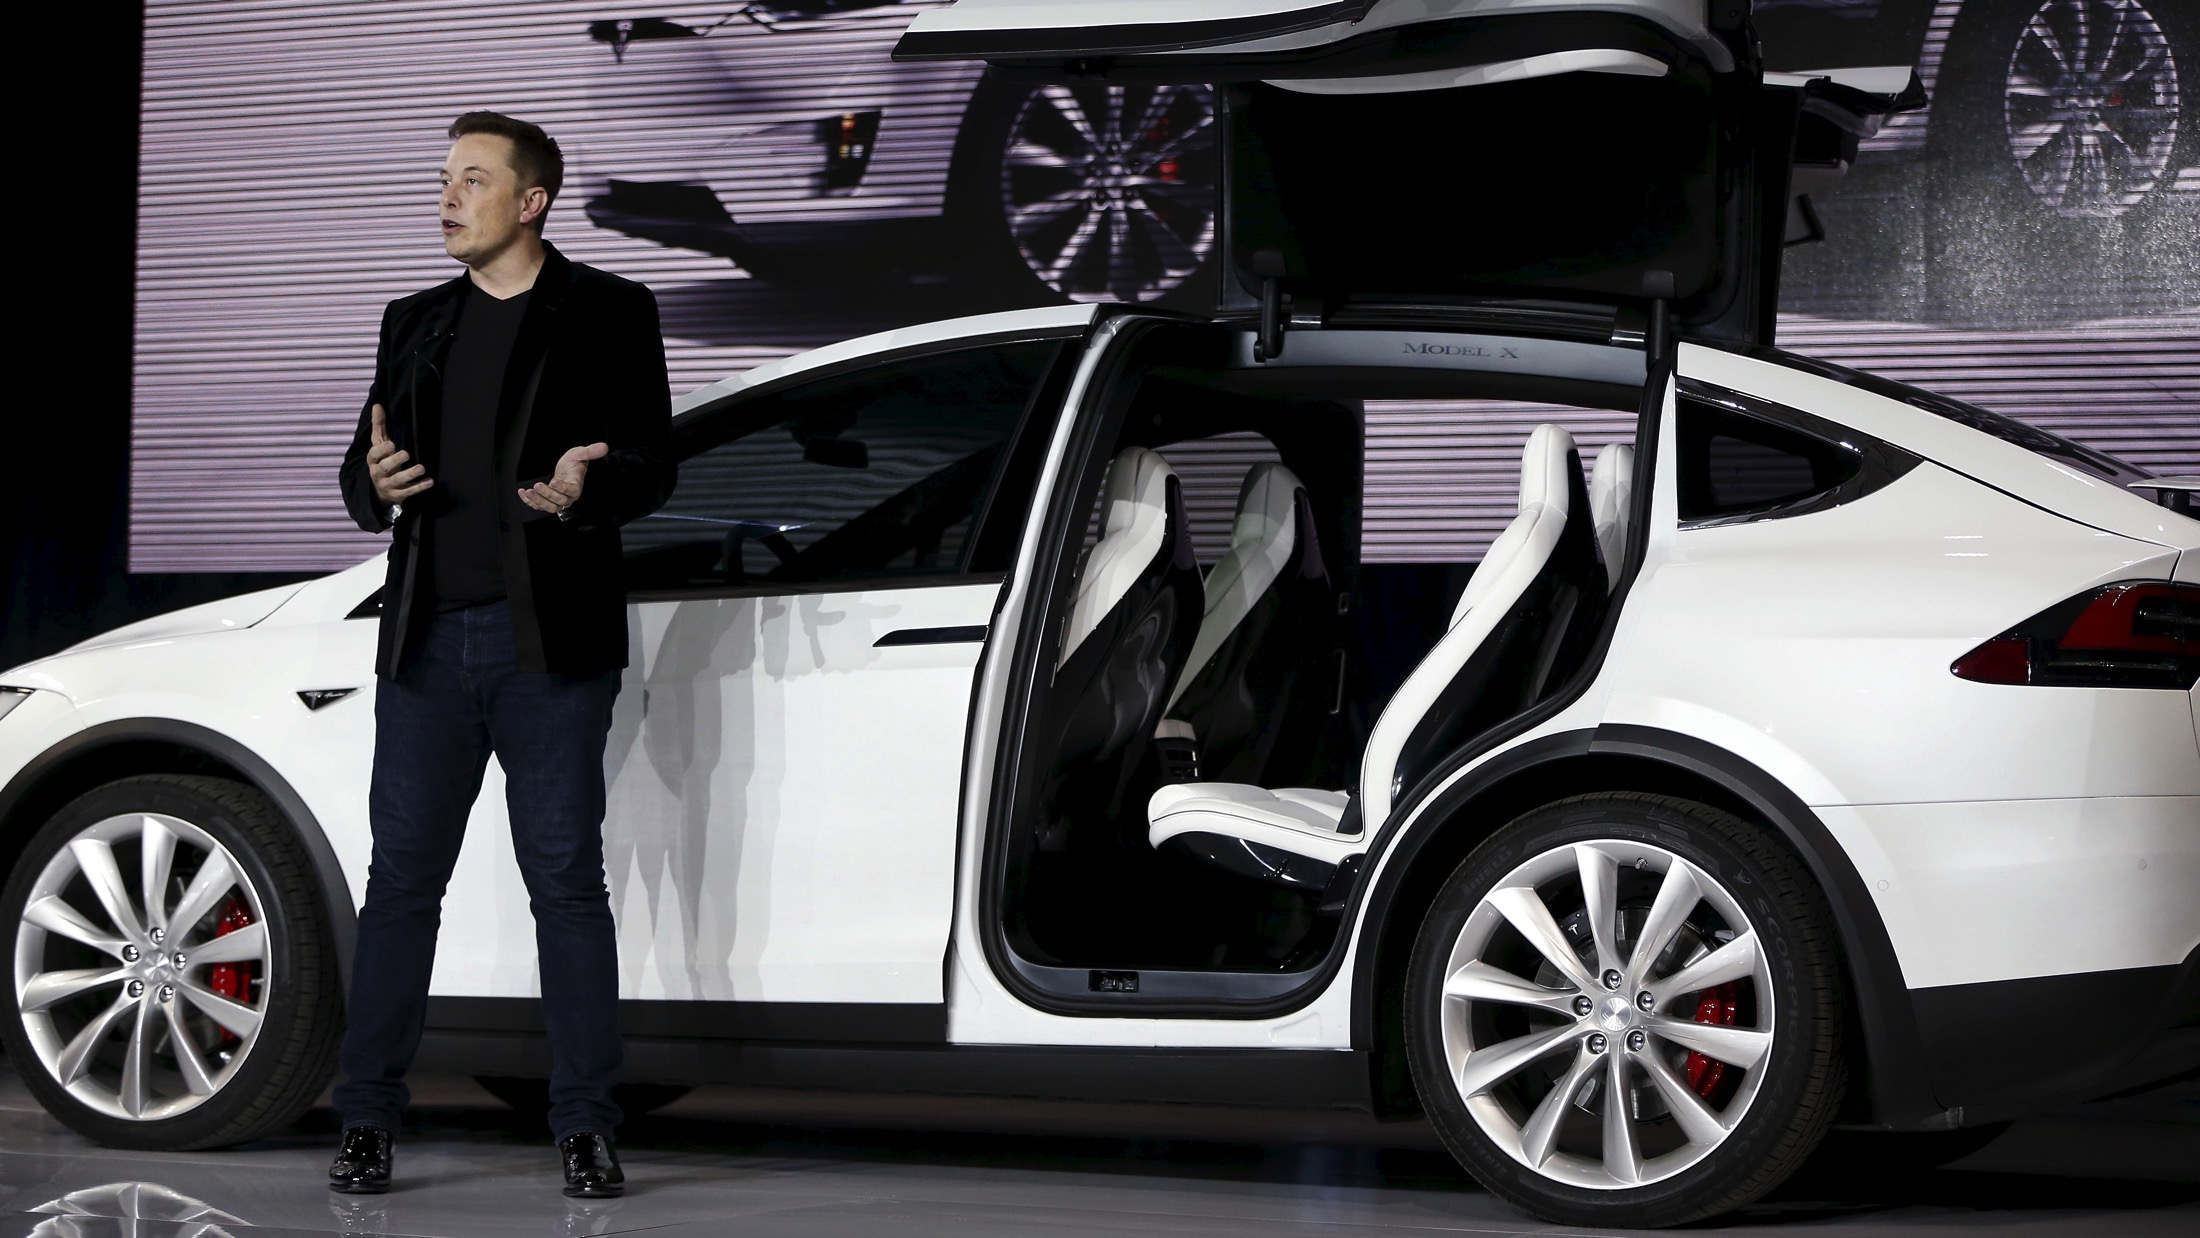 Elon Musk Says The Tesla Model X Is The Best Car Ever Made